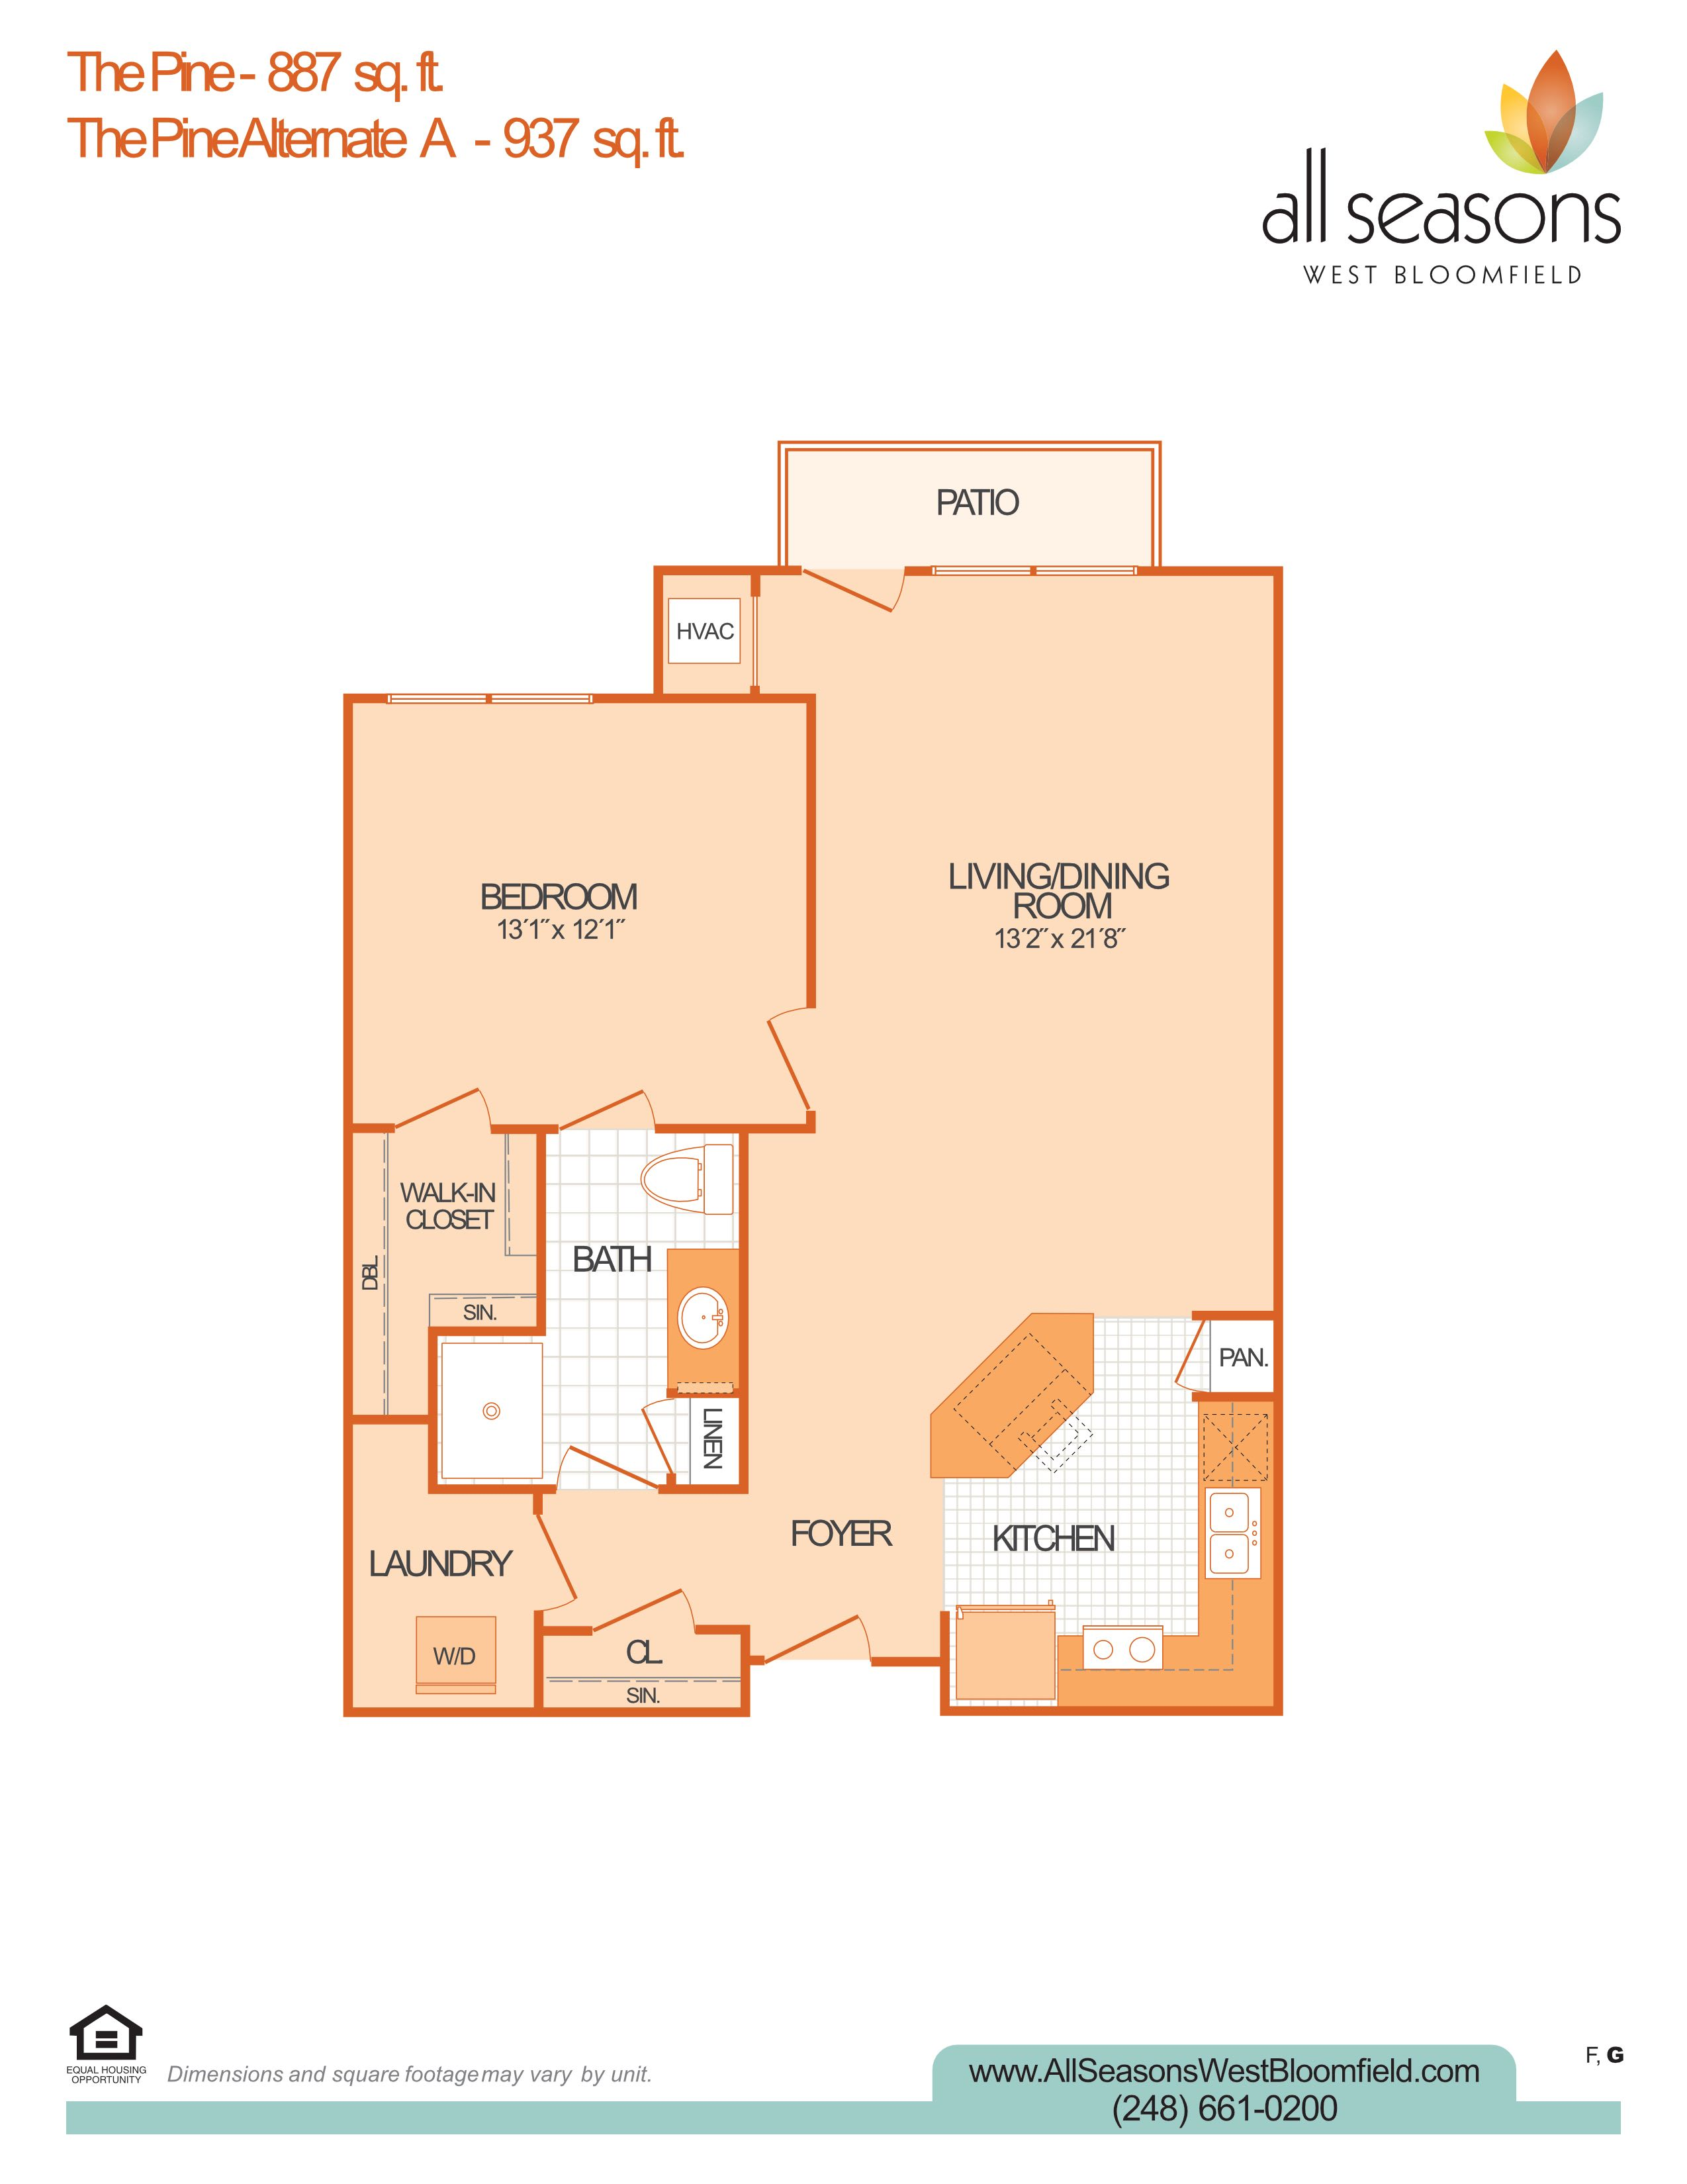 The Pine floor plan at All Seasons West Bloomfield in West Bloomfield, Michigan